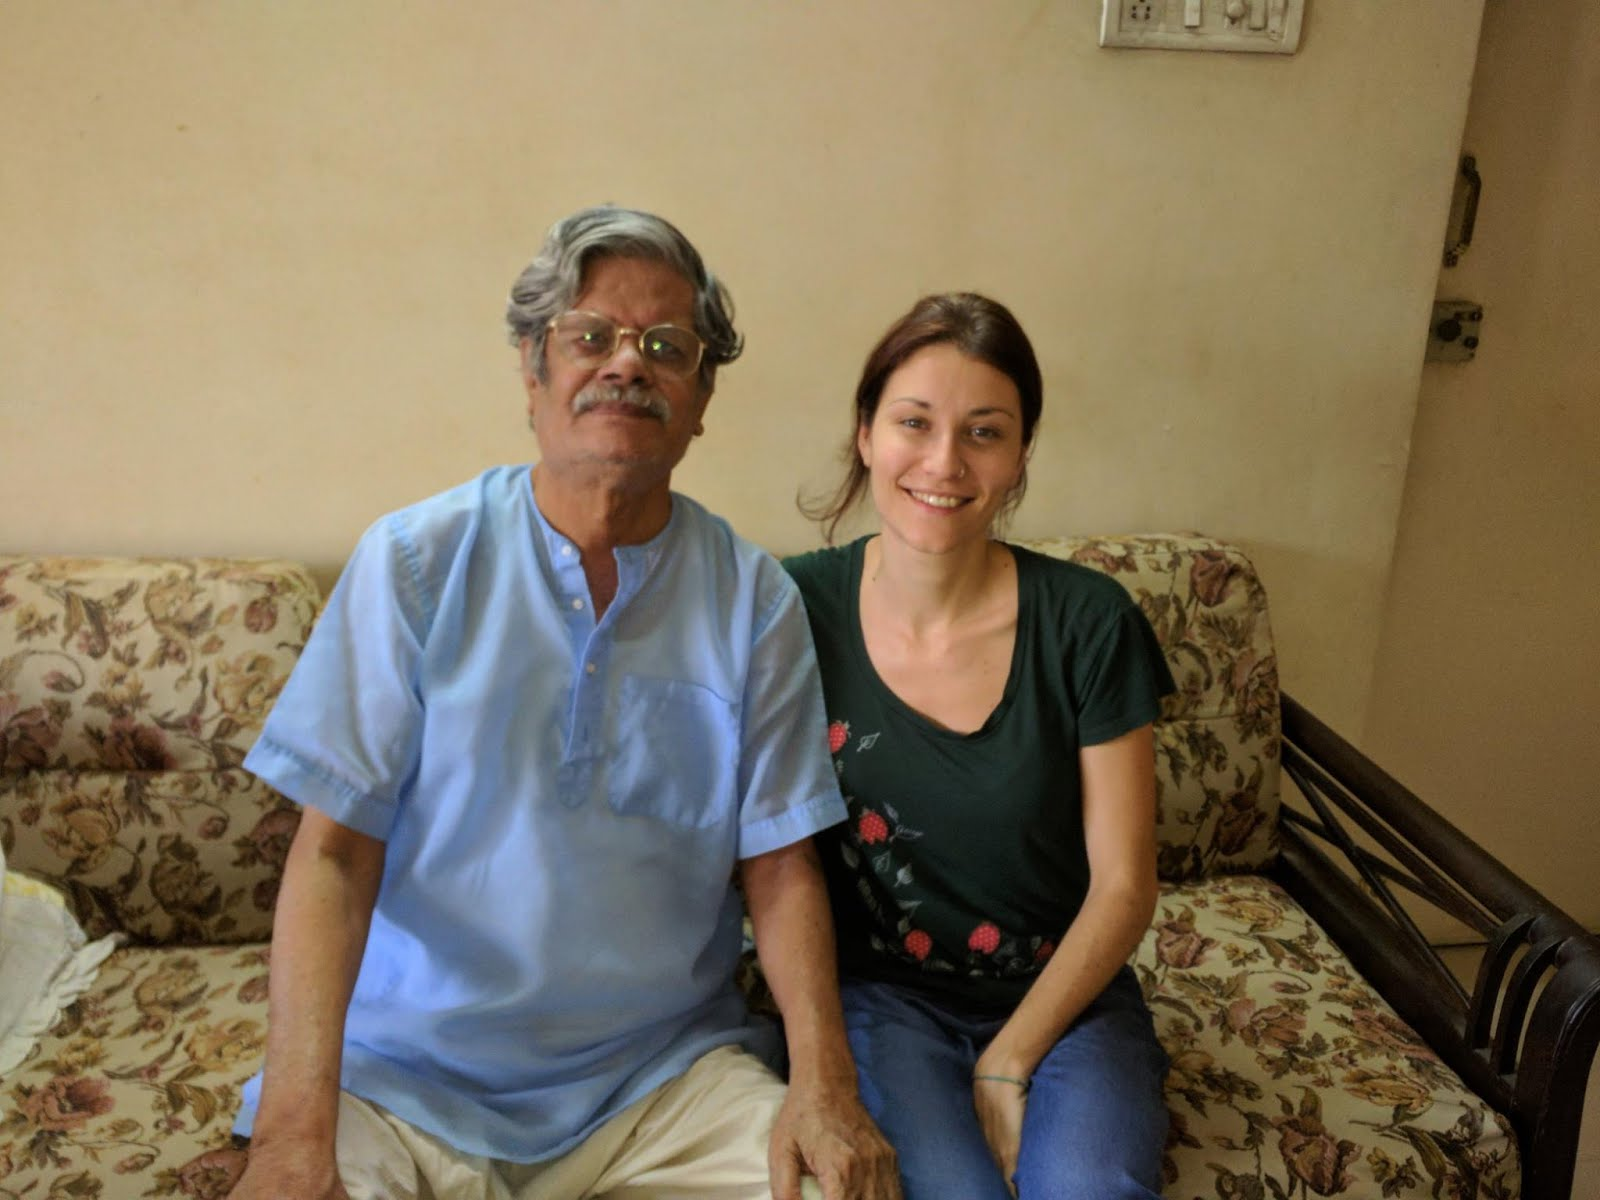 Daniela Cappello interviewing Malay Roychoudhury in 2017